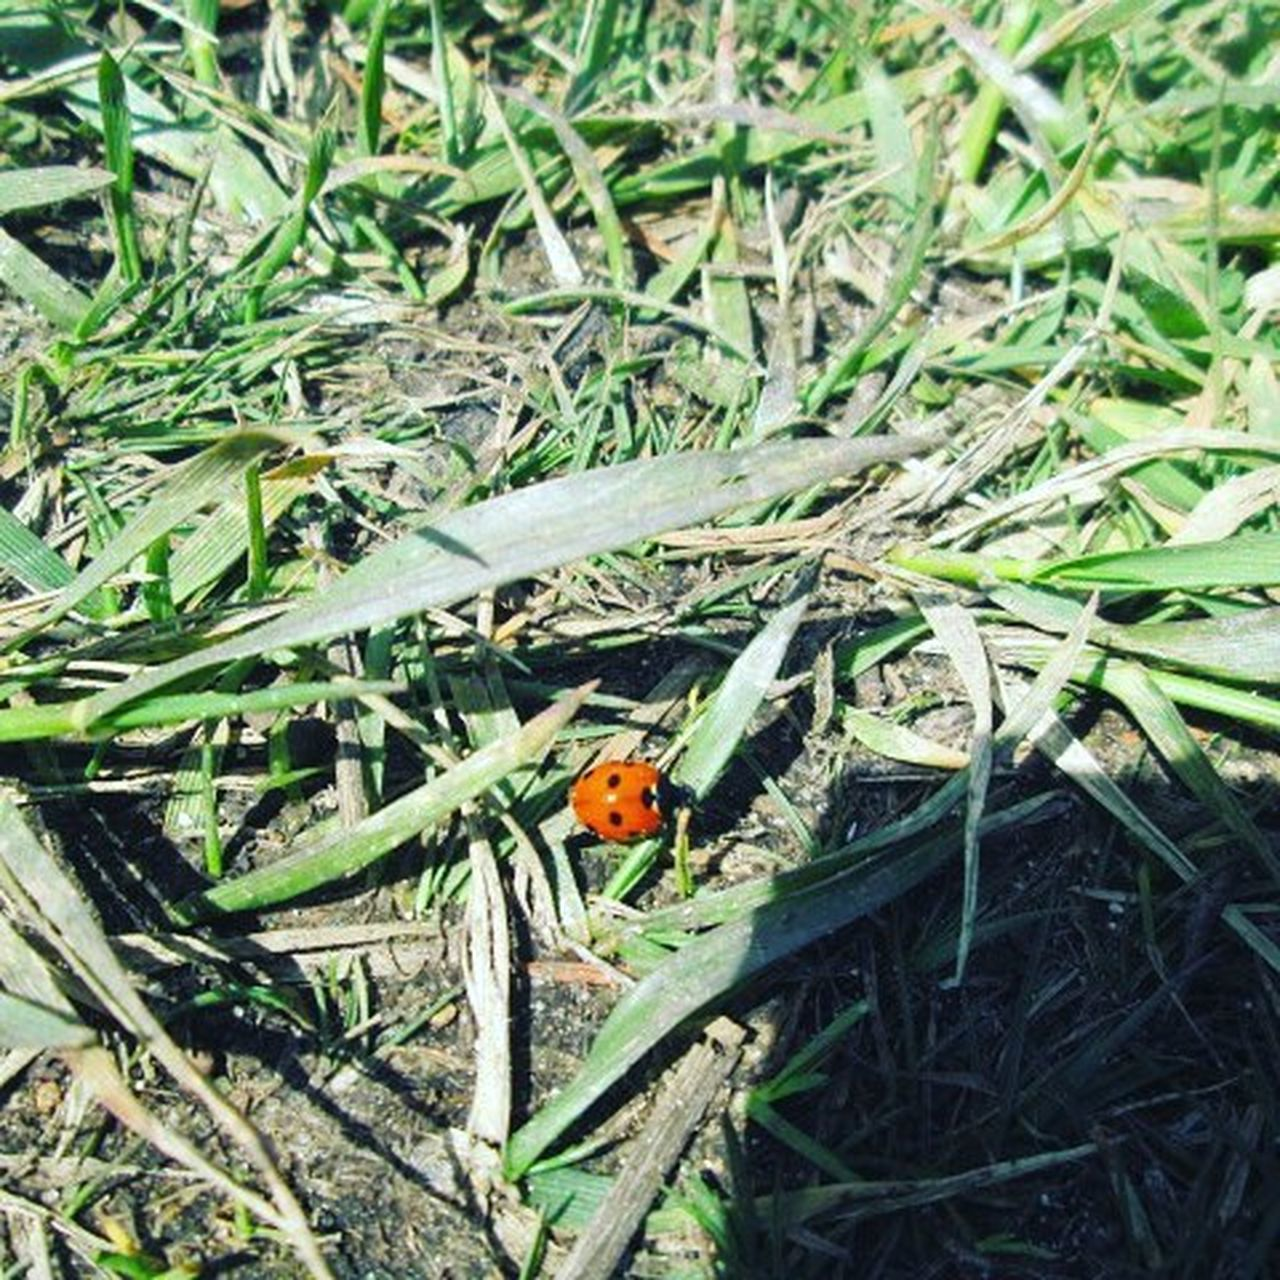 animals in the wild, animal themes, insect, wildlife, one animal, high angle view, grass, day, green color, no people, nature, outdoors, field, animal wildlife, ladybug, tiny, close-up, perching